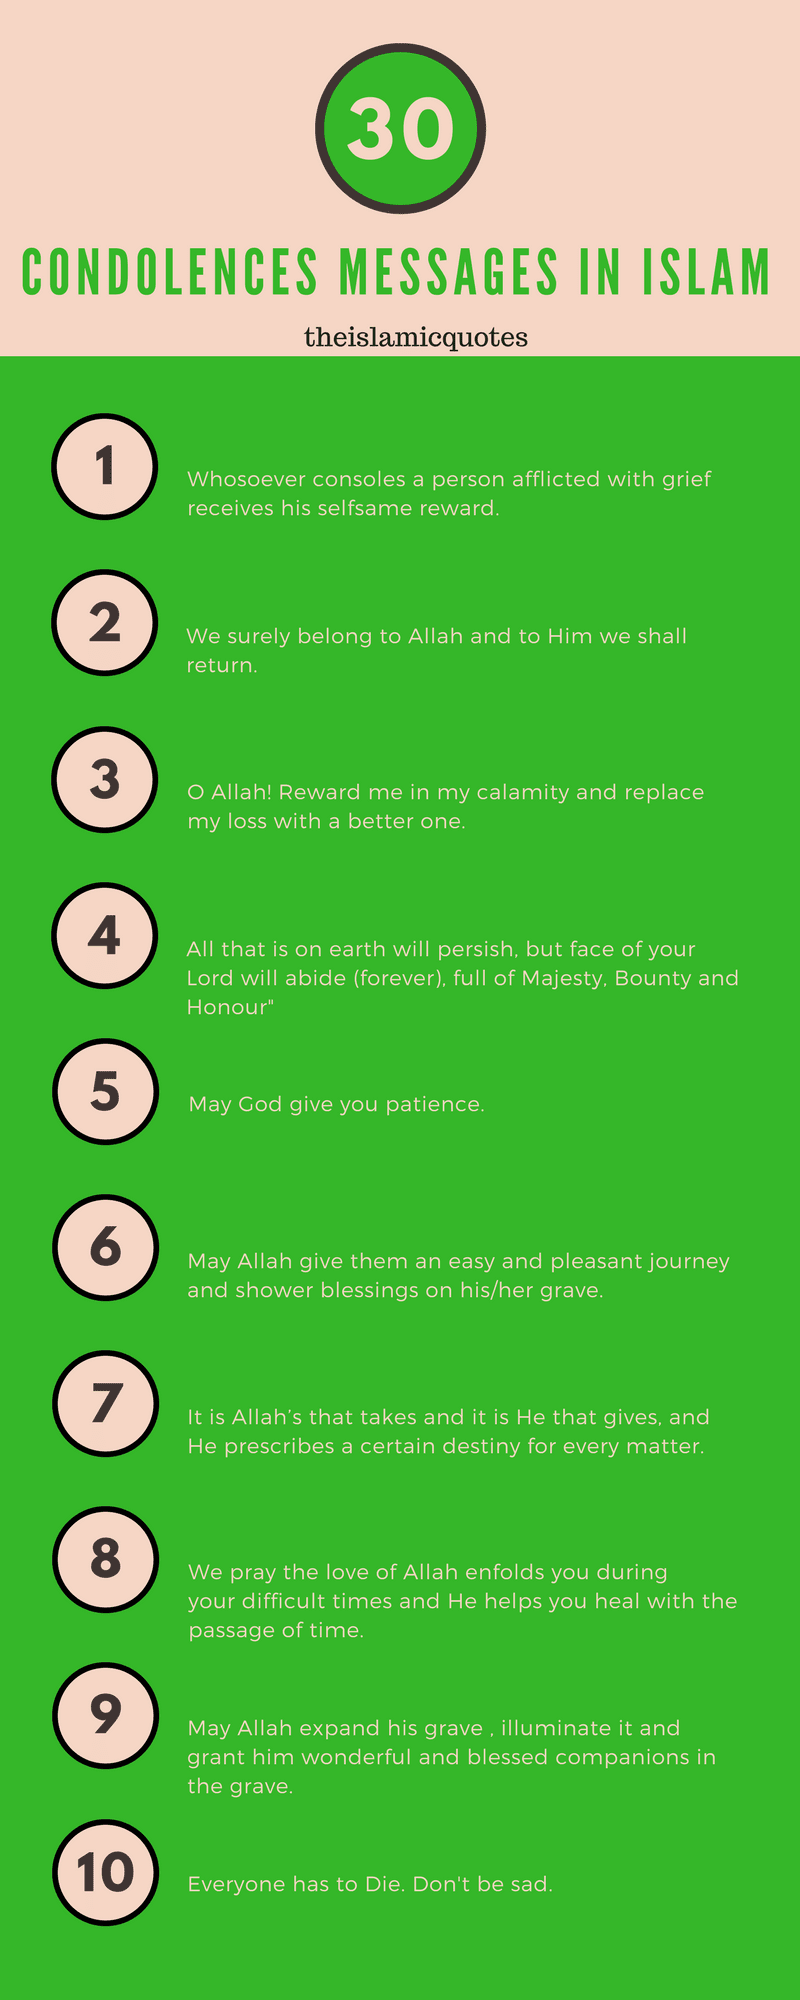 Condolences Messages in Islam (16)